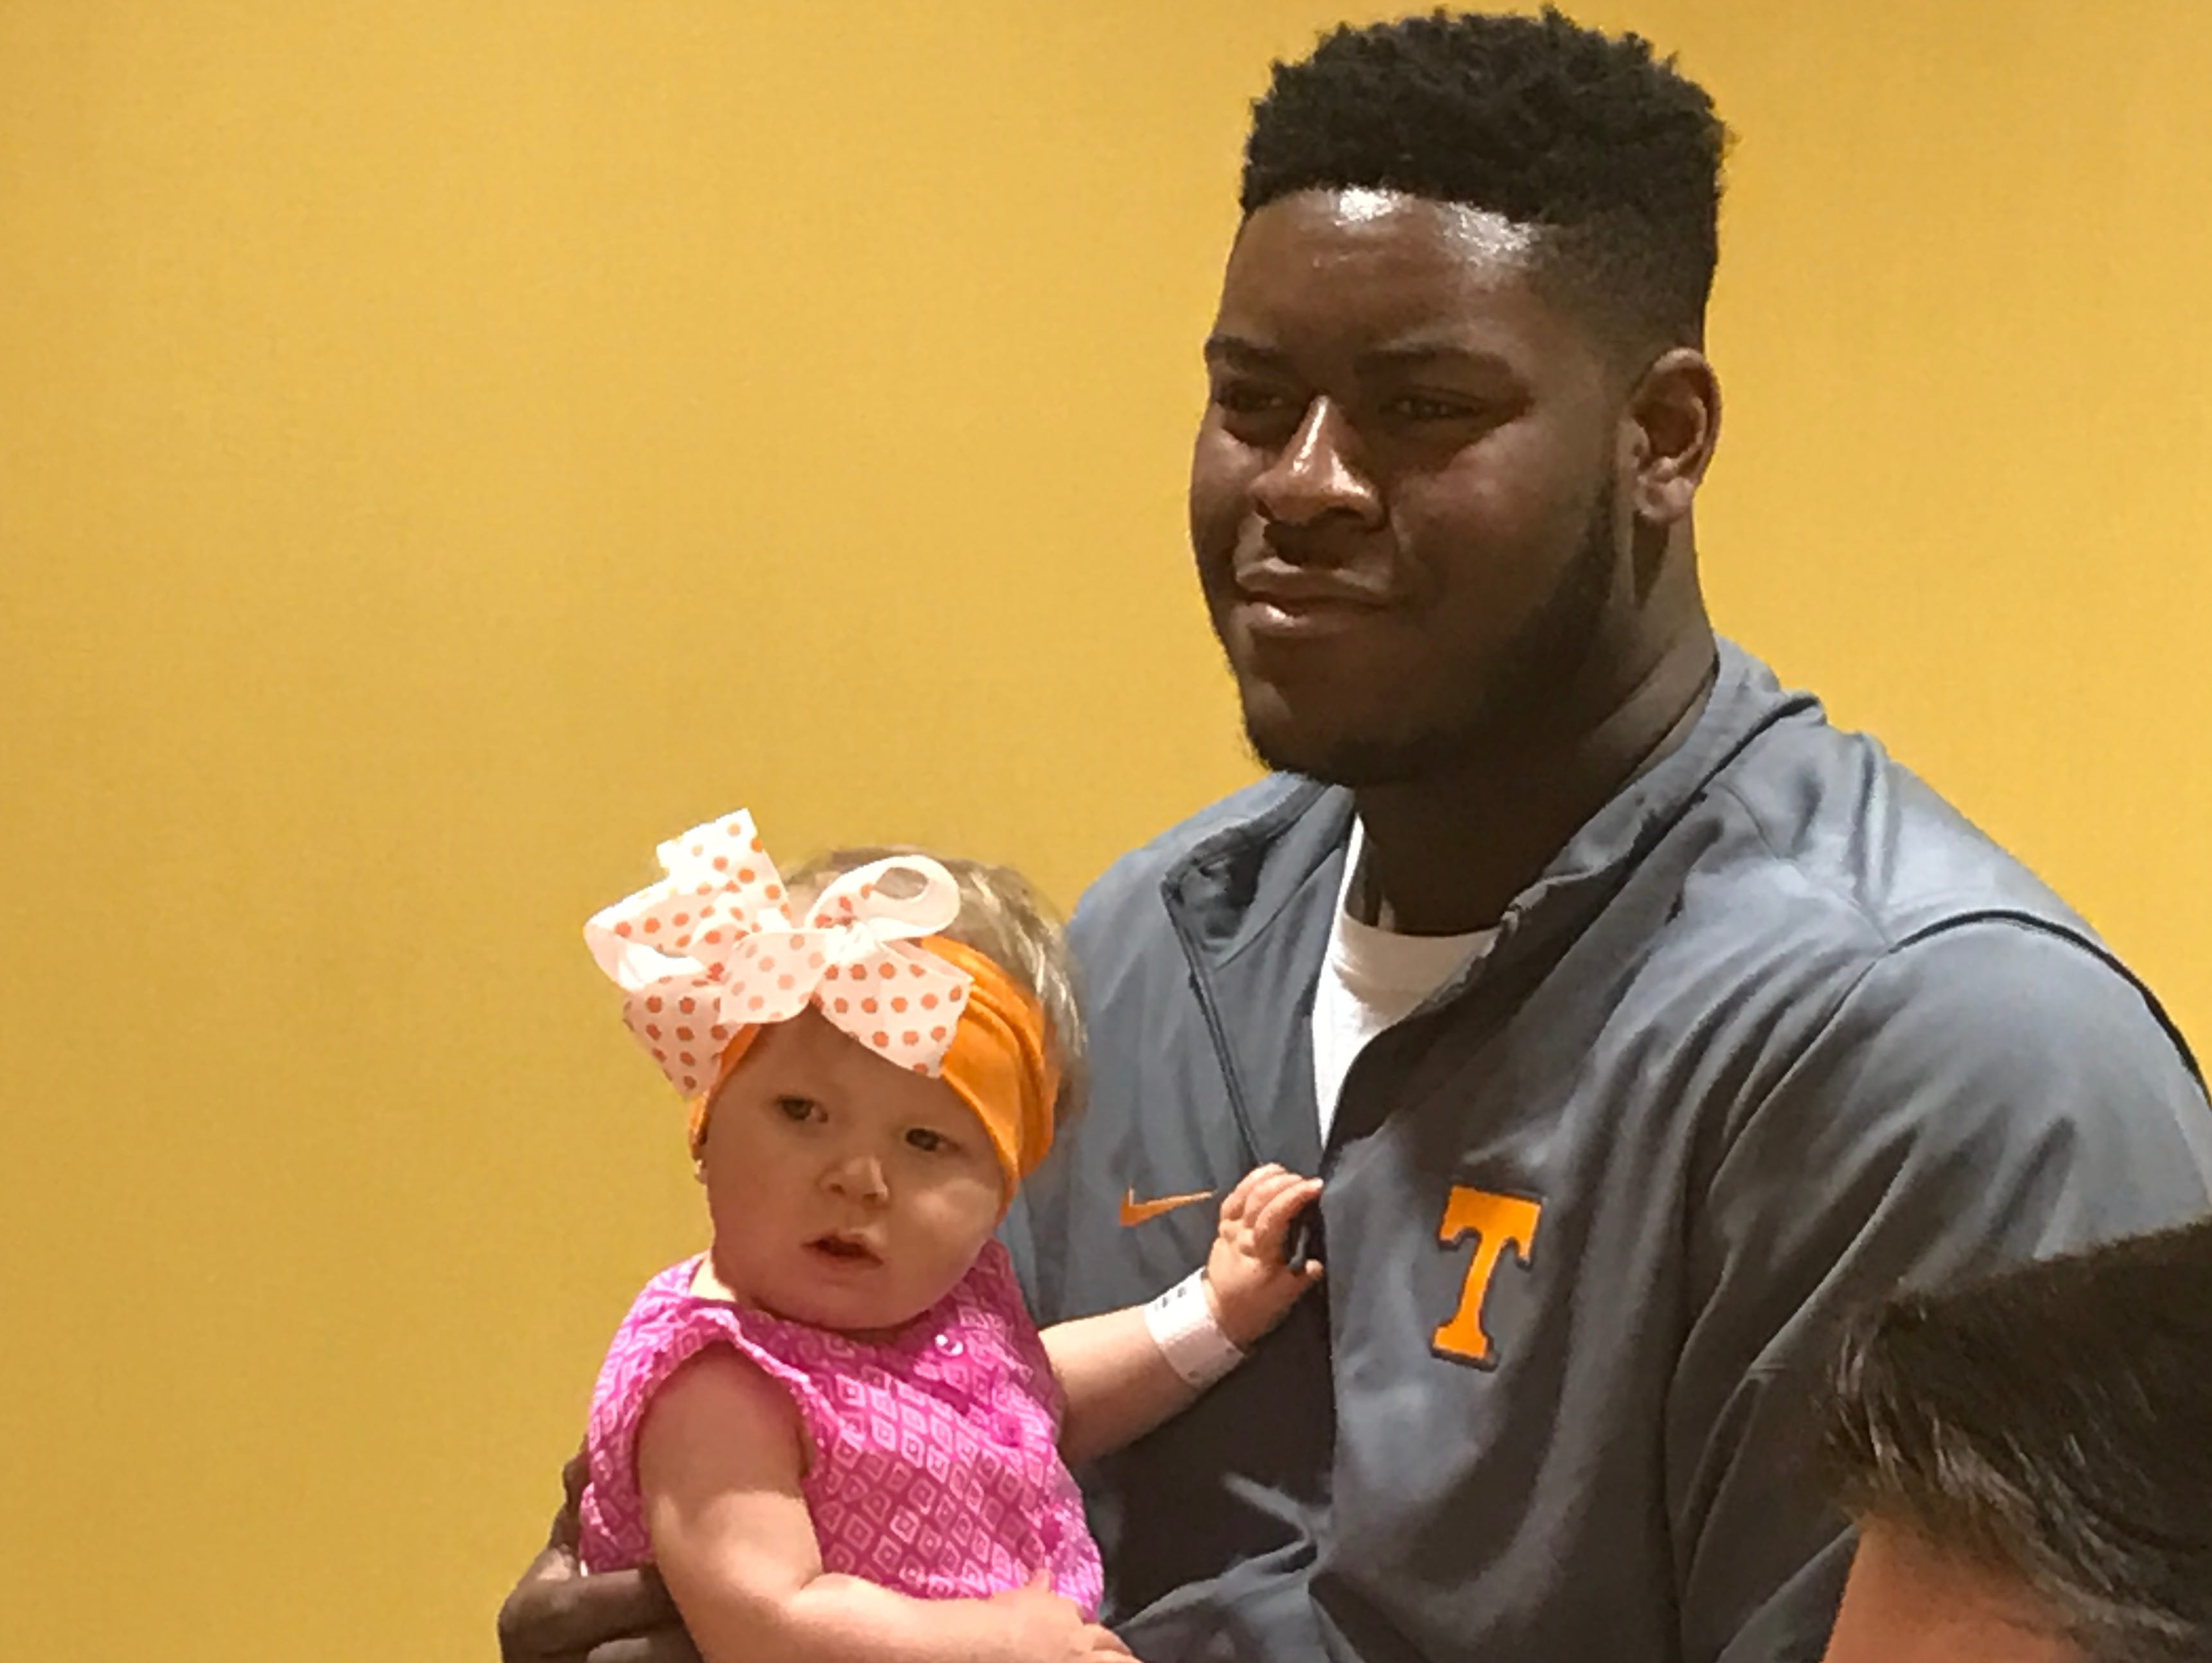 When the Vols visited East Tennessee Children's Hospital in March 2017, Trey Smith spent time holding Paizley Hatcher, a seven-month-old girl who spent her first three months in the neonatal intensive care unit. Afterwards he said the experience was humbling.